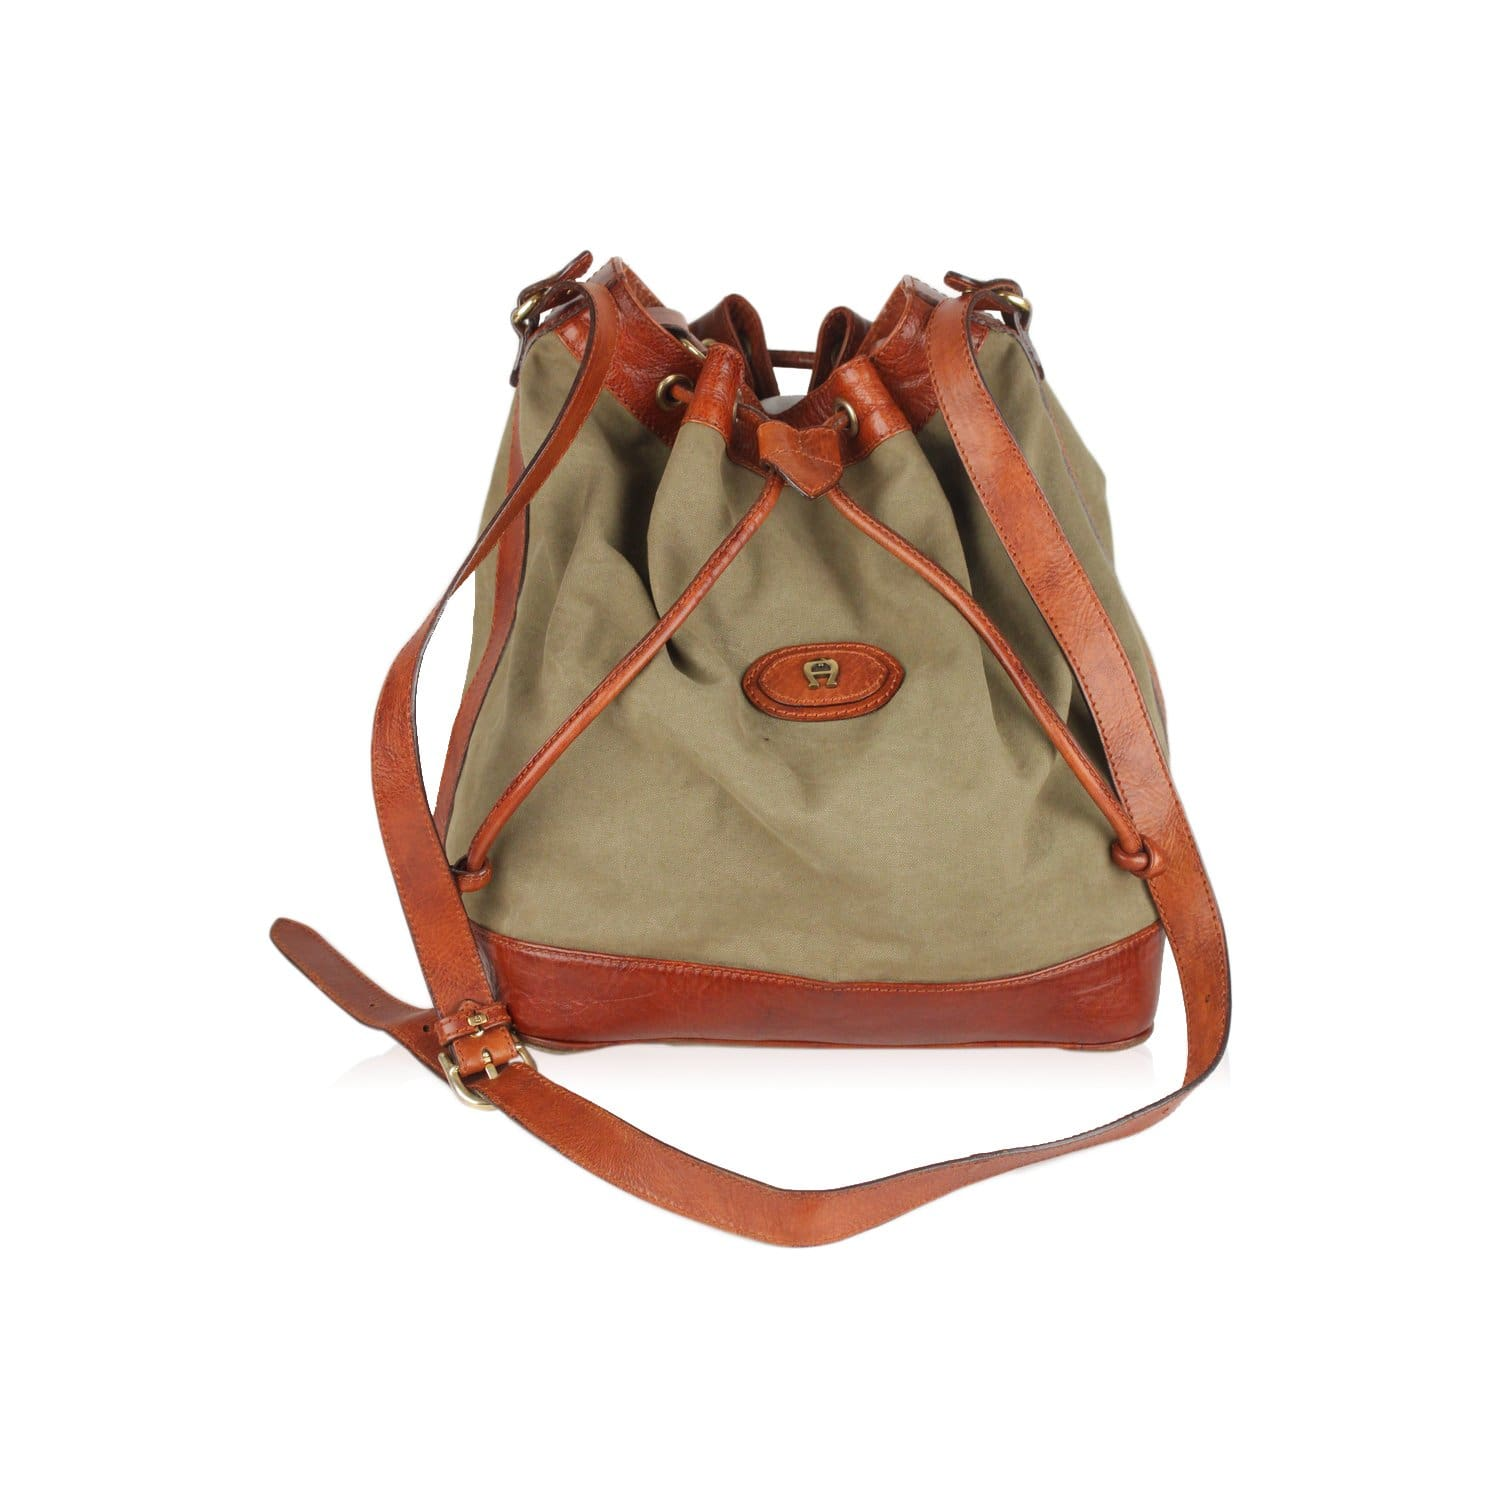 68a74e96b0 Enjoy Etienne Aigner Vintage Drawstring Bucket Bag at OPHERTYCIOCCI ...